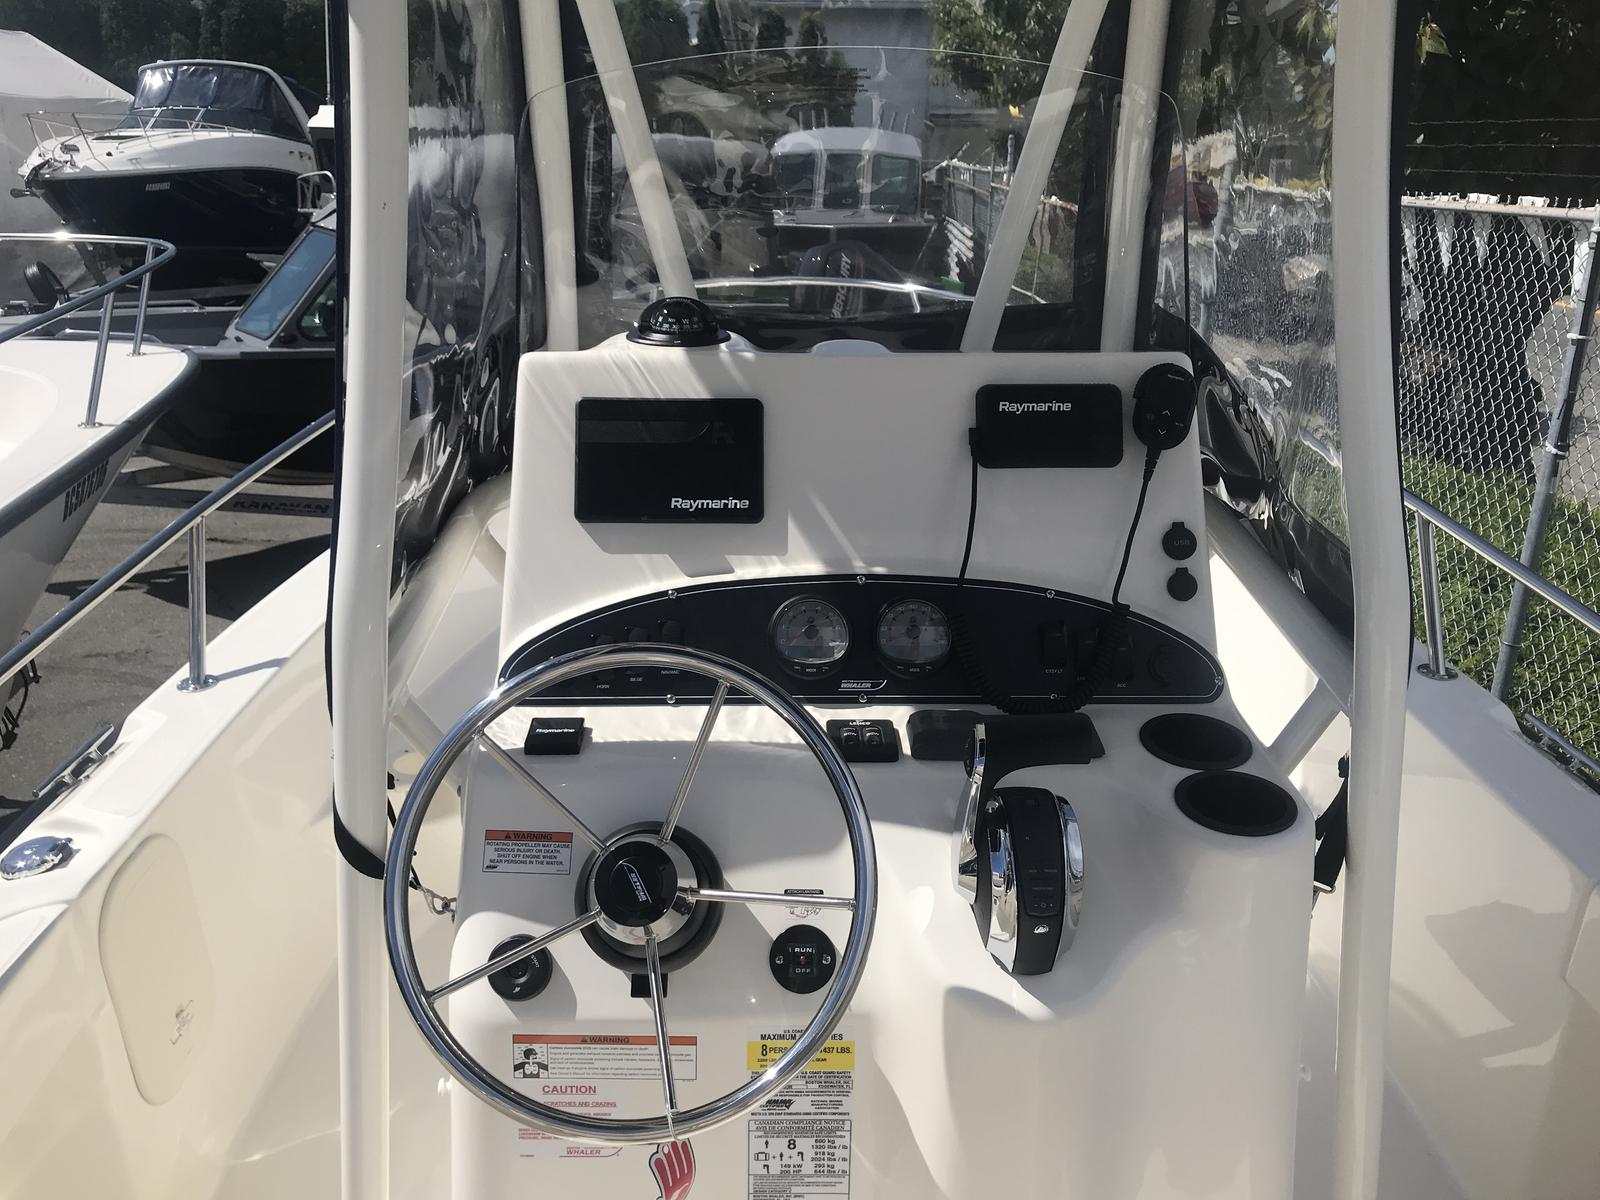 2019 Boston Whaler boat for sale, model of the boat is 190 Outrage & Image # 2 of 12